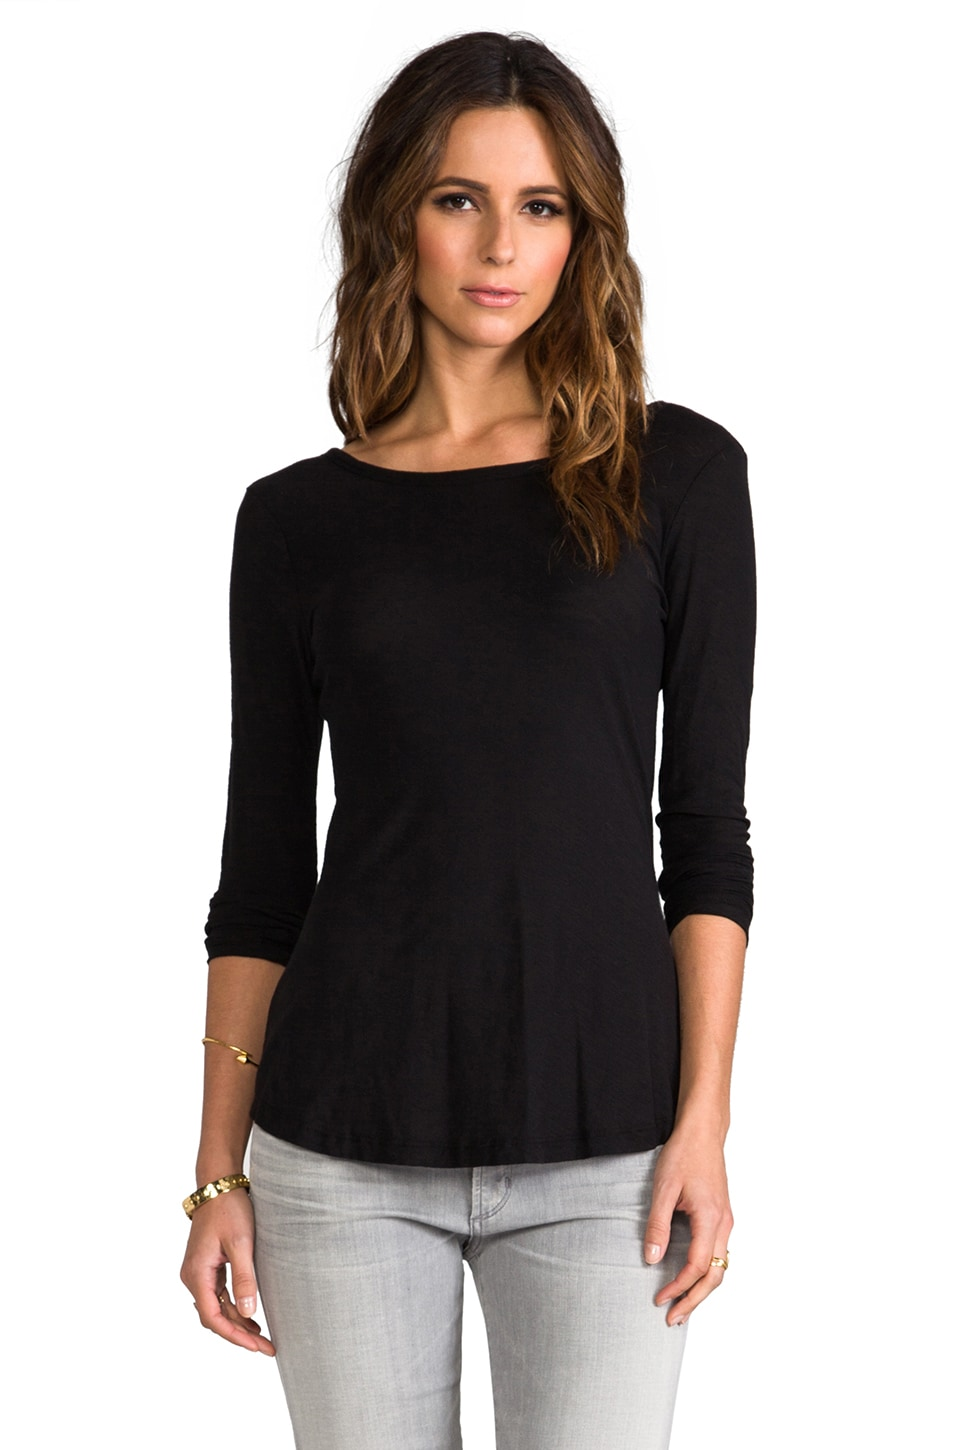 James Perse Sheer Slub Long Sleeve Tee in Black